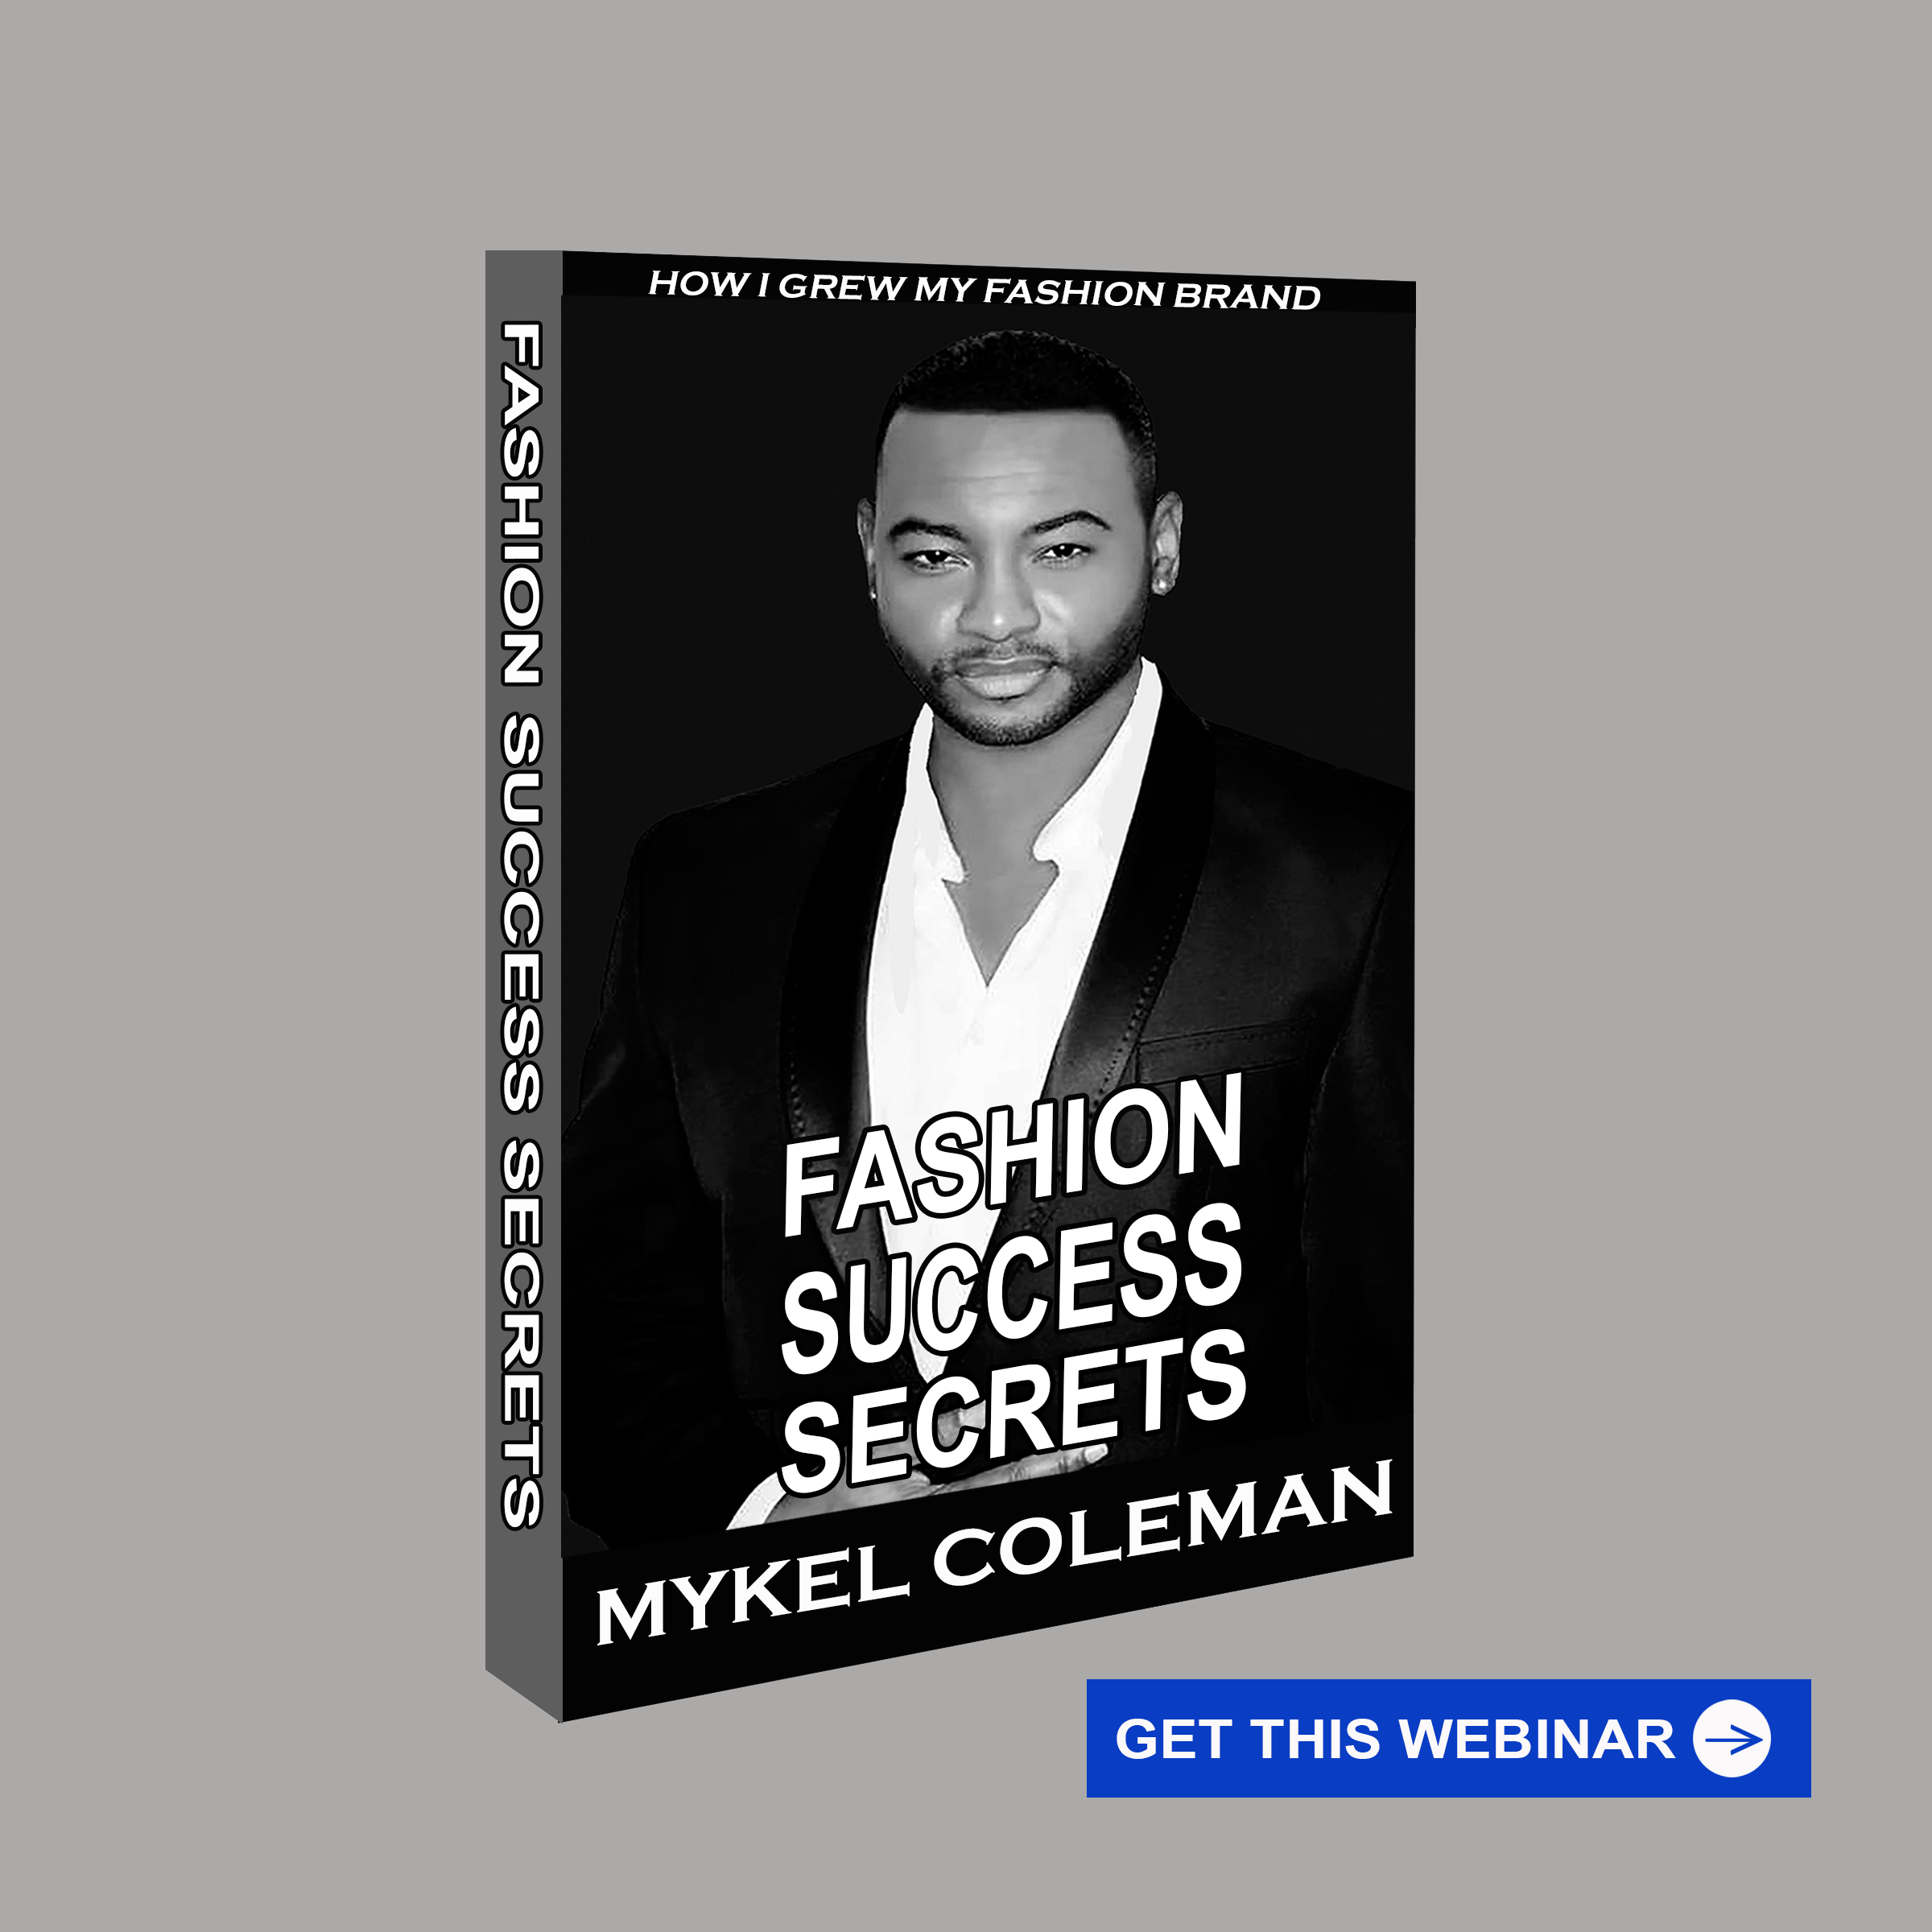 Fashion Success Secrets - Webinar